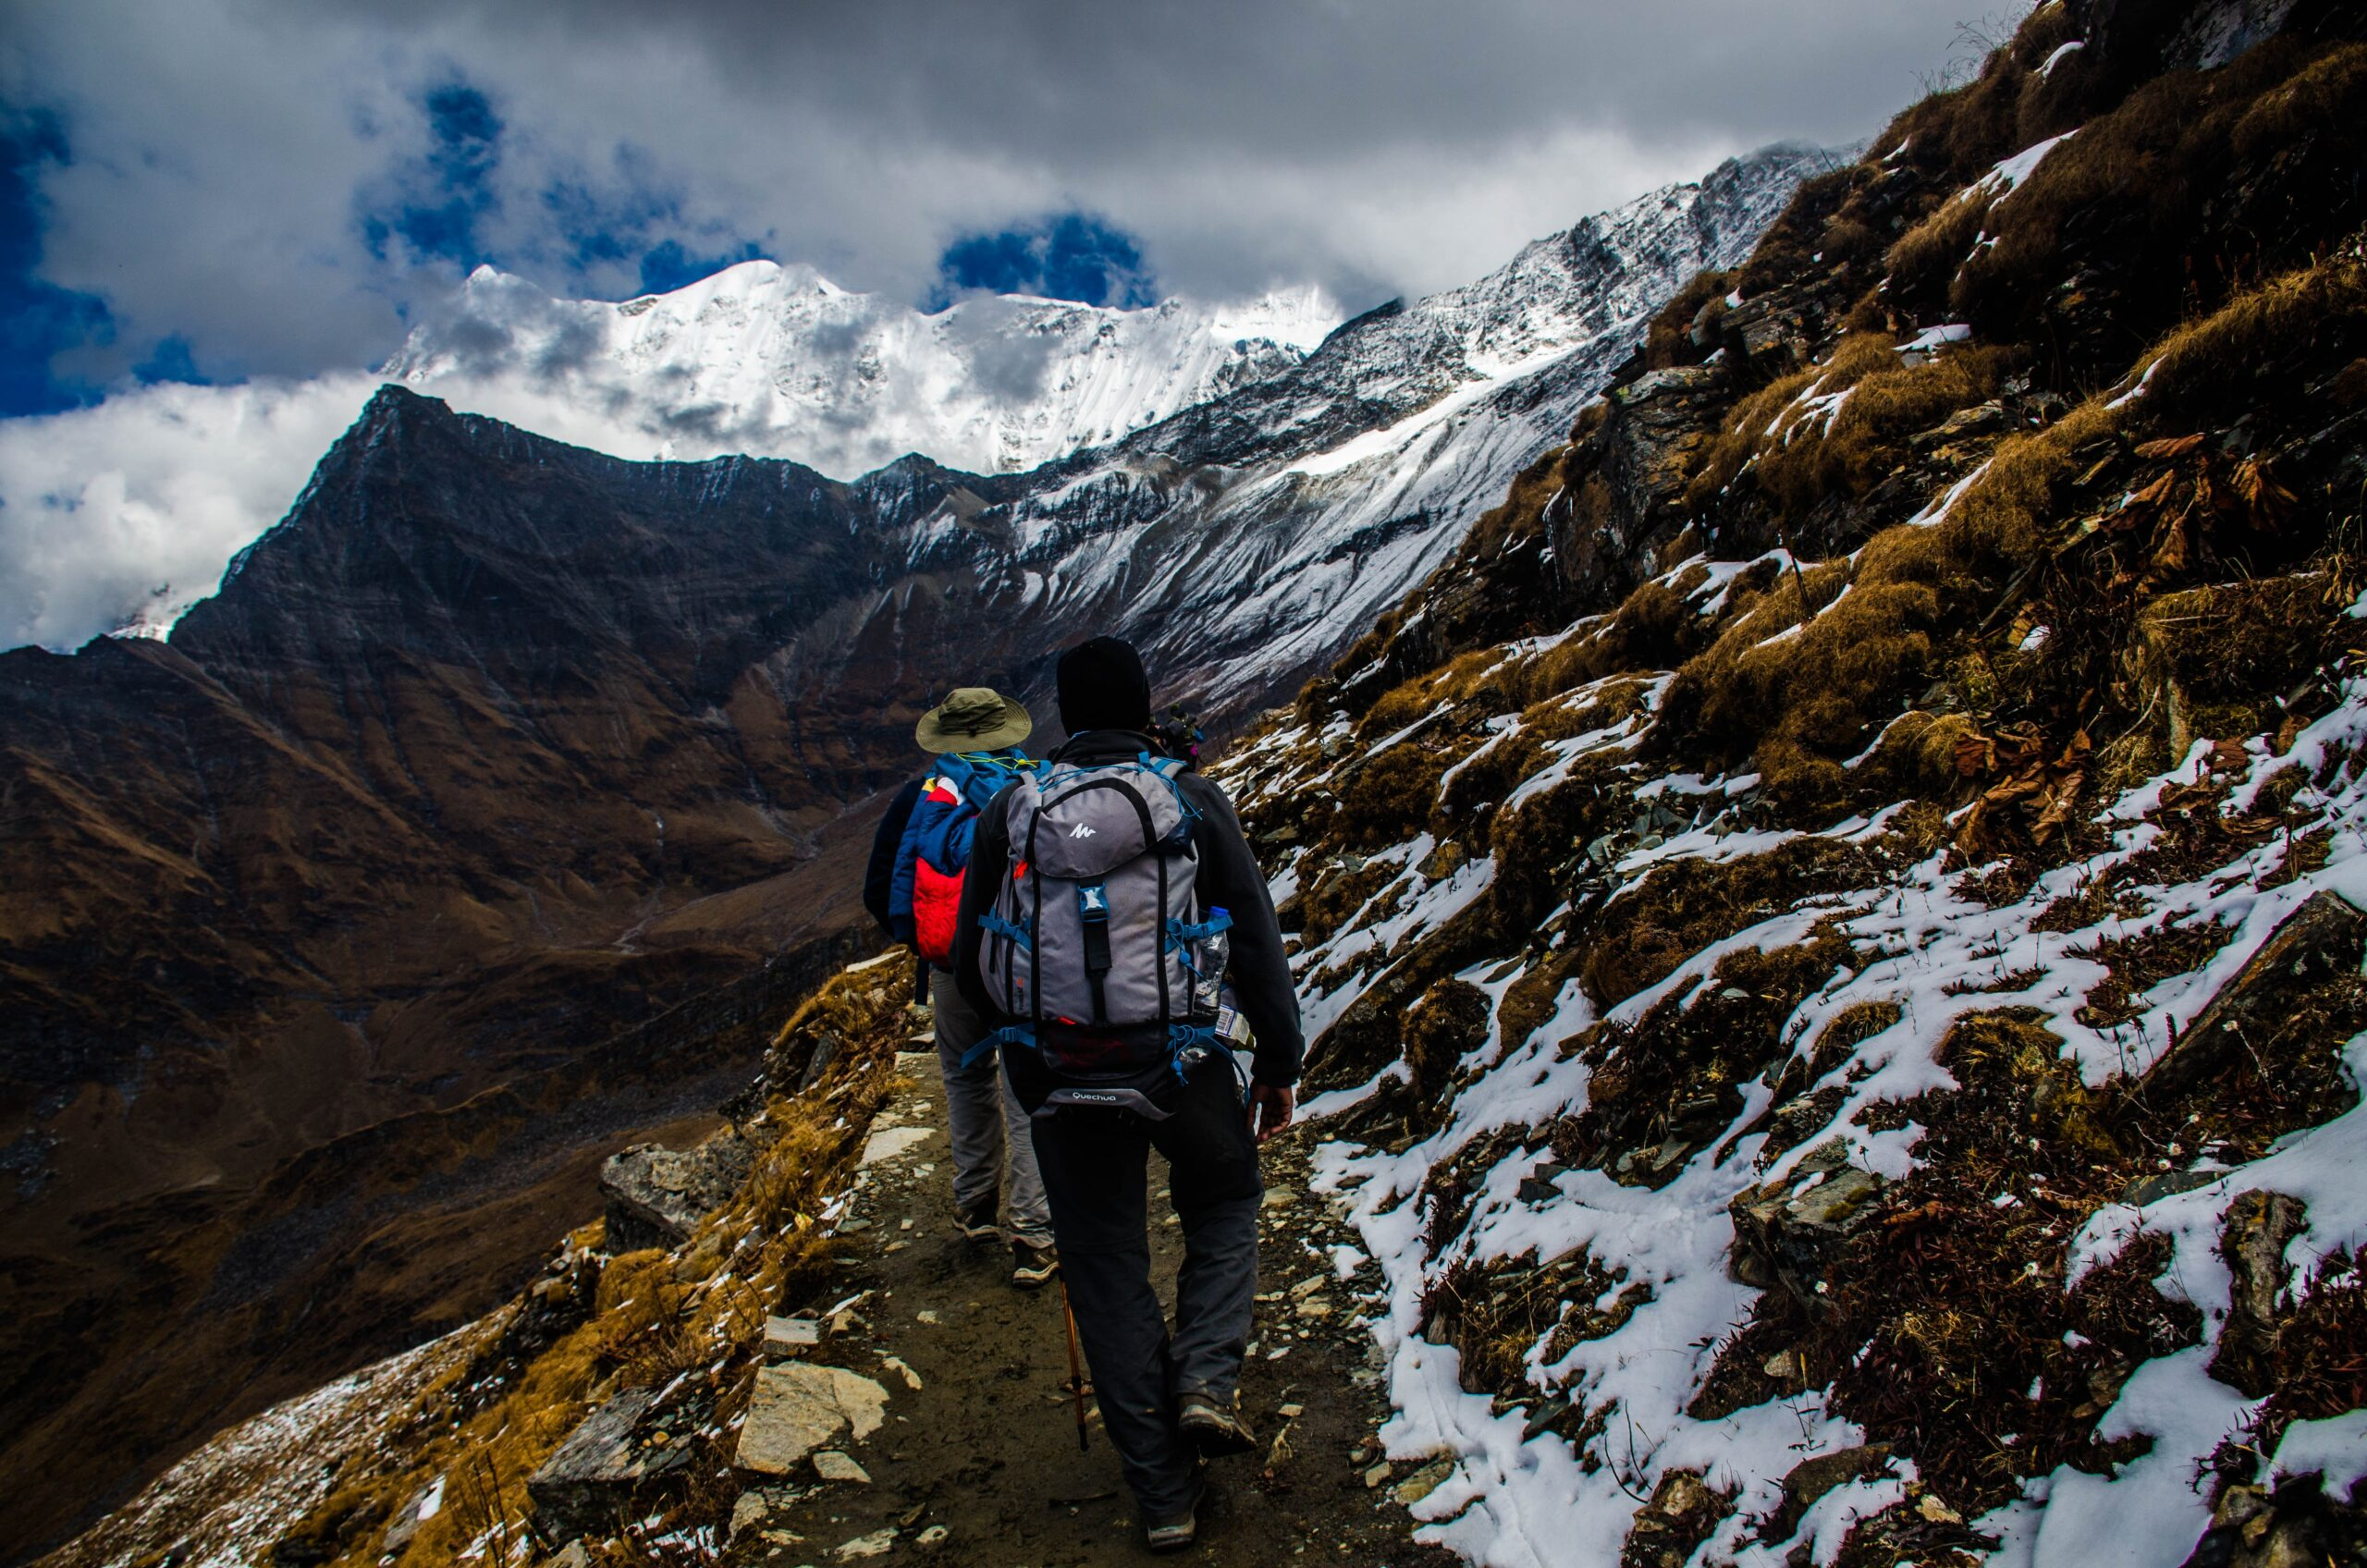 Photo by Saikat Ghosh - DRUK PATH TREK